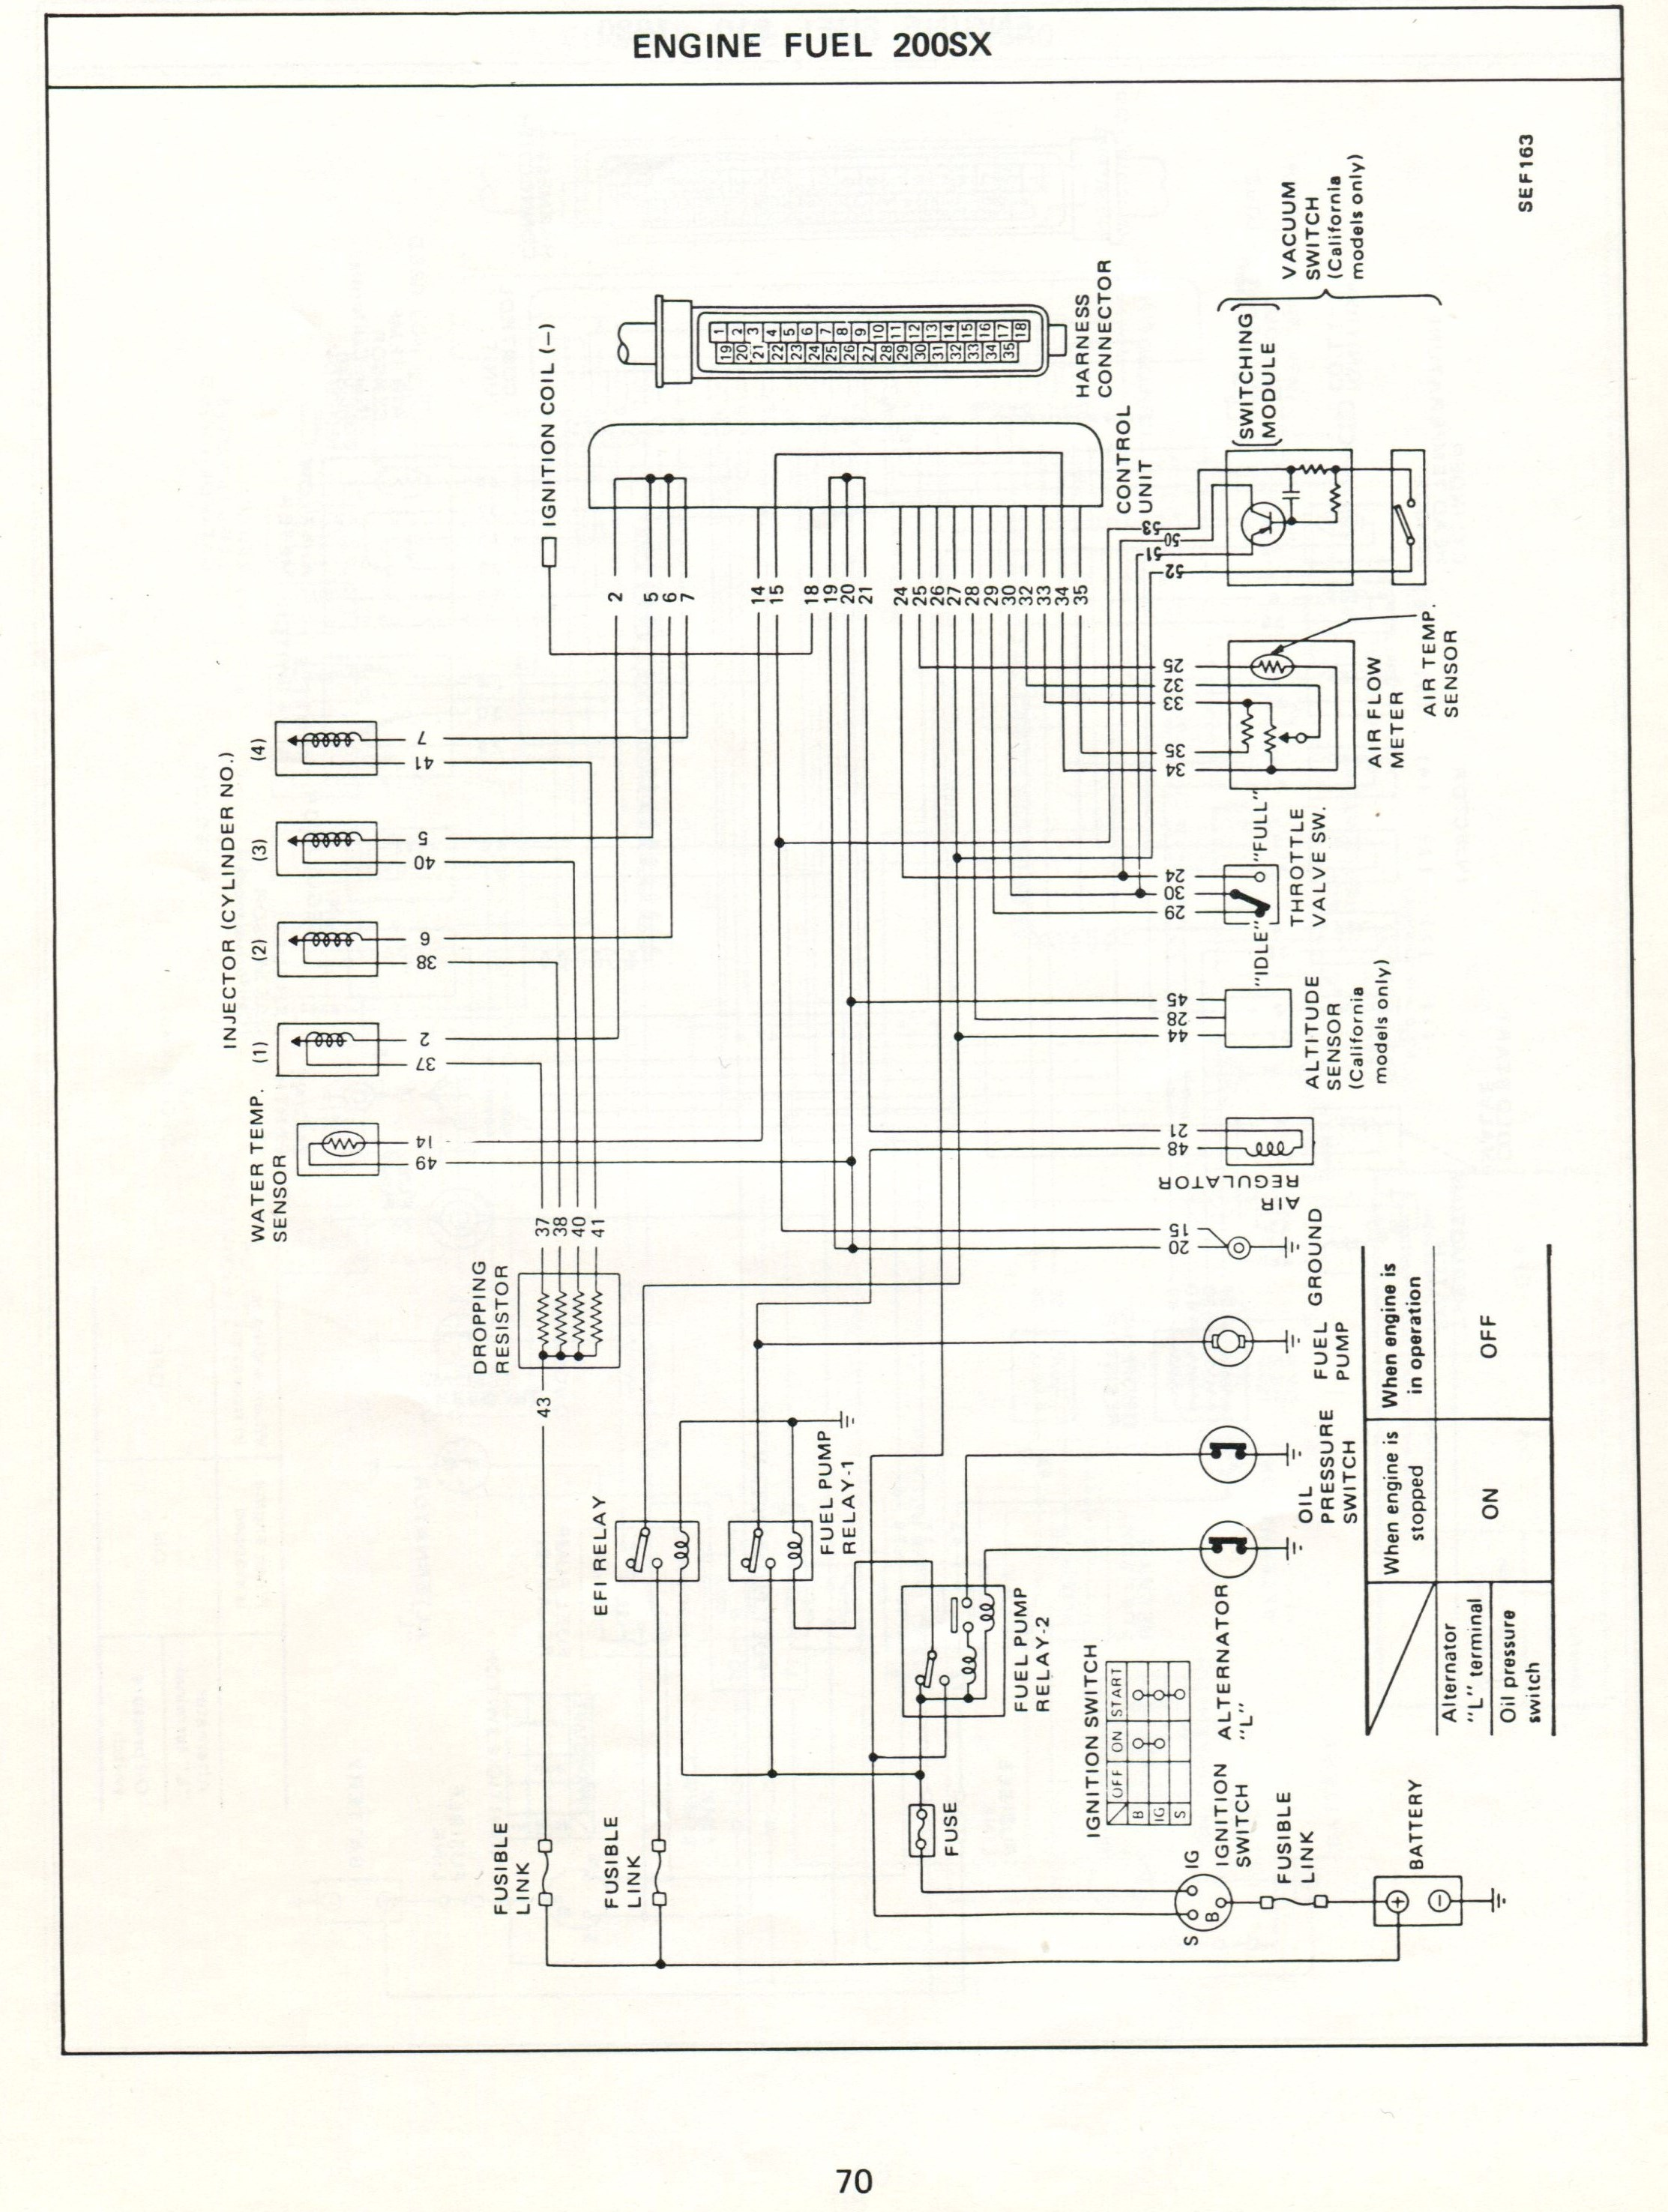 75 280z wiring diagram   22 wiring diagram images